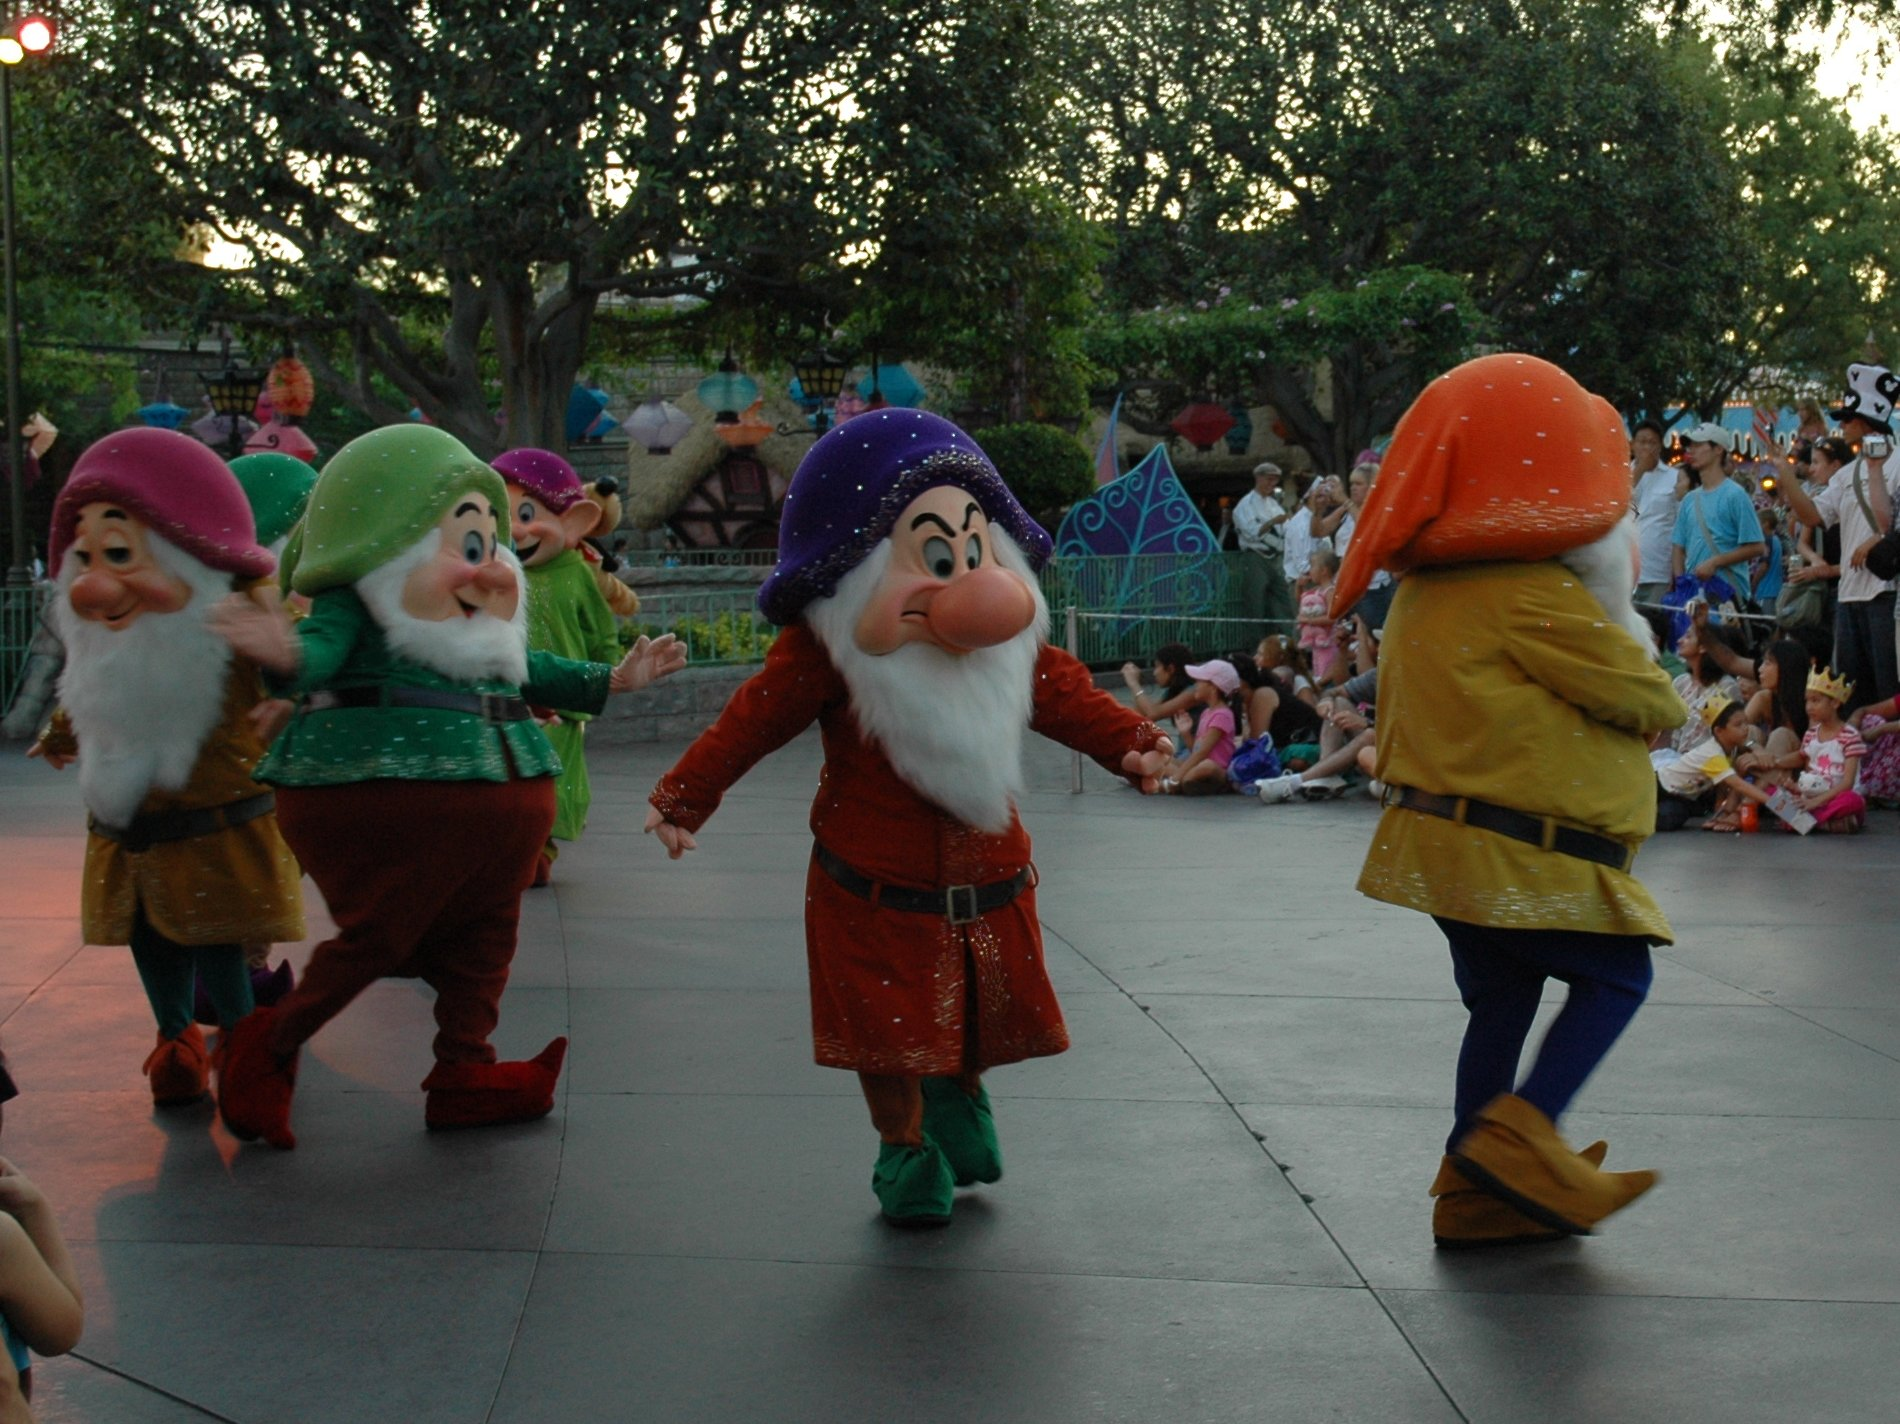 Grumpy and his dwarf pals… I'm not sure where Snow White is though? Los Angeles (2007)